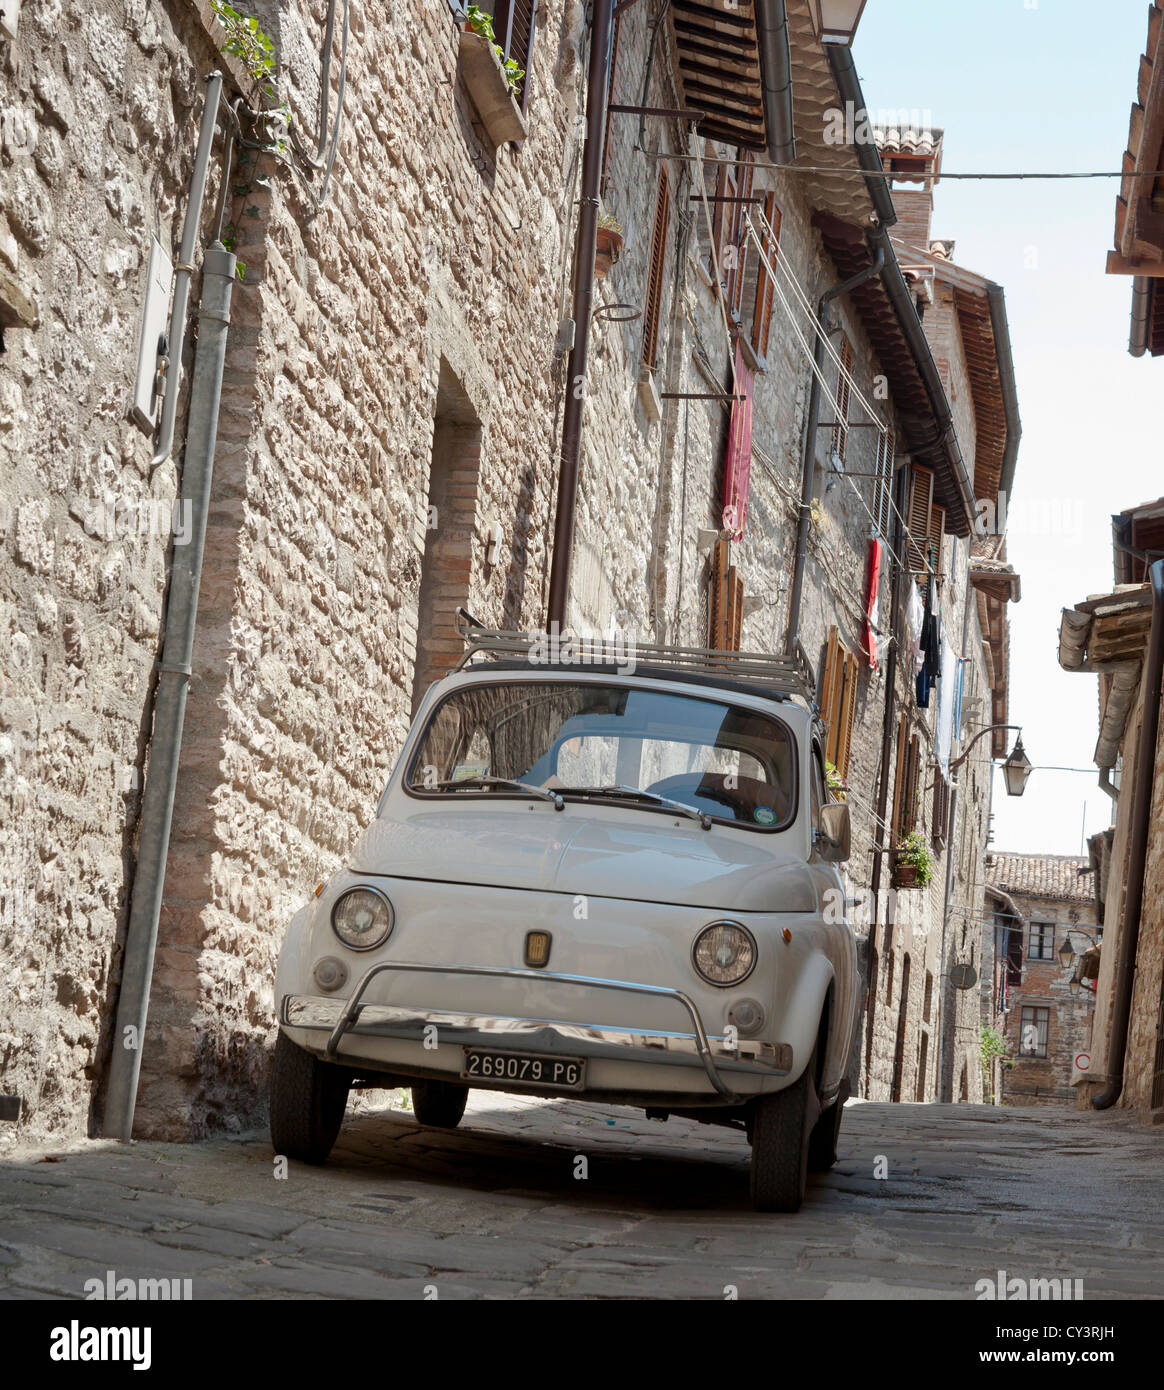 Small Fiat Car In Narrow Cobbled Guubbio Street Umbria Italy Stock